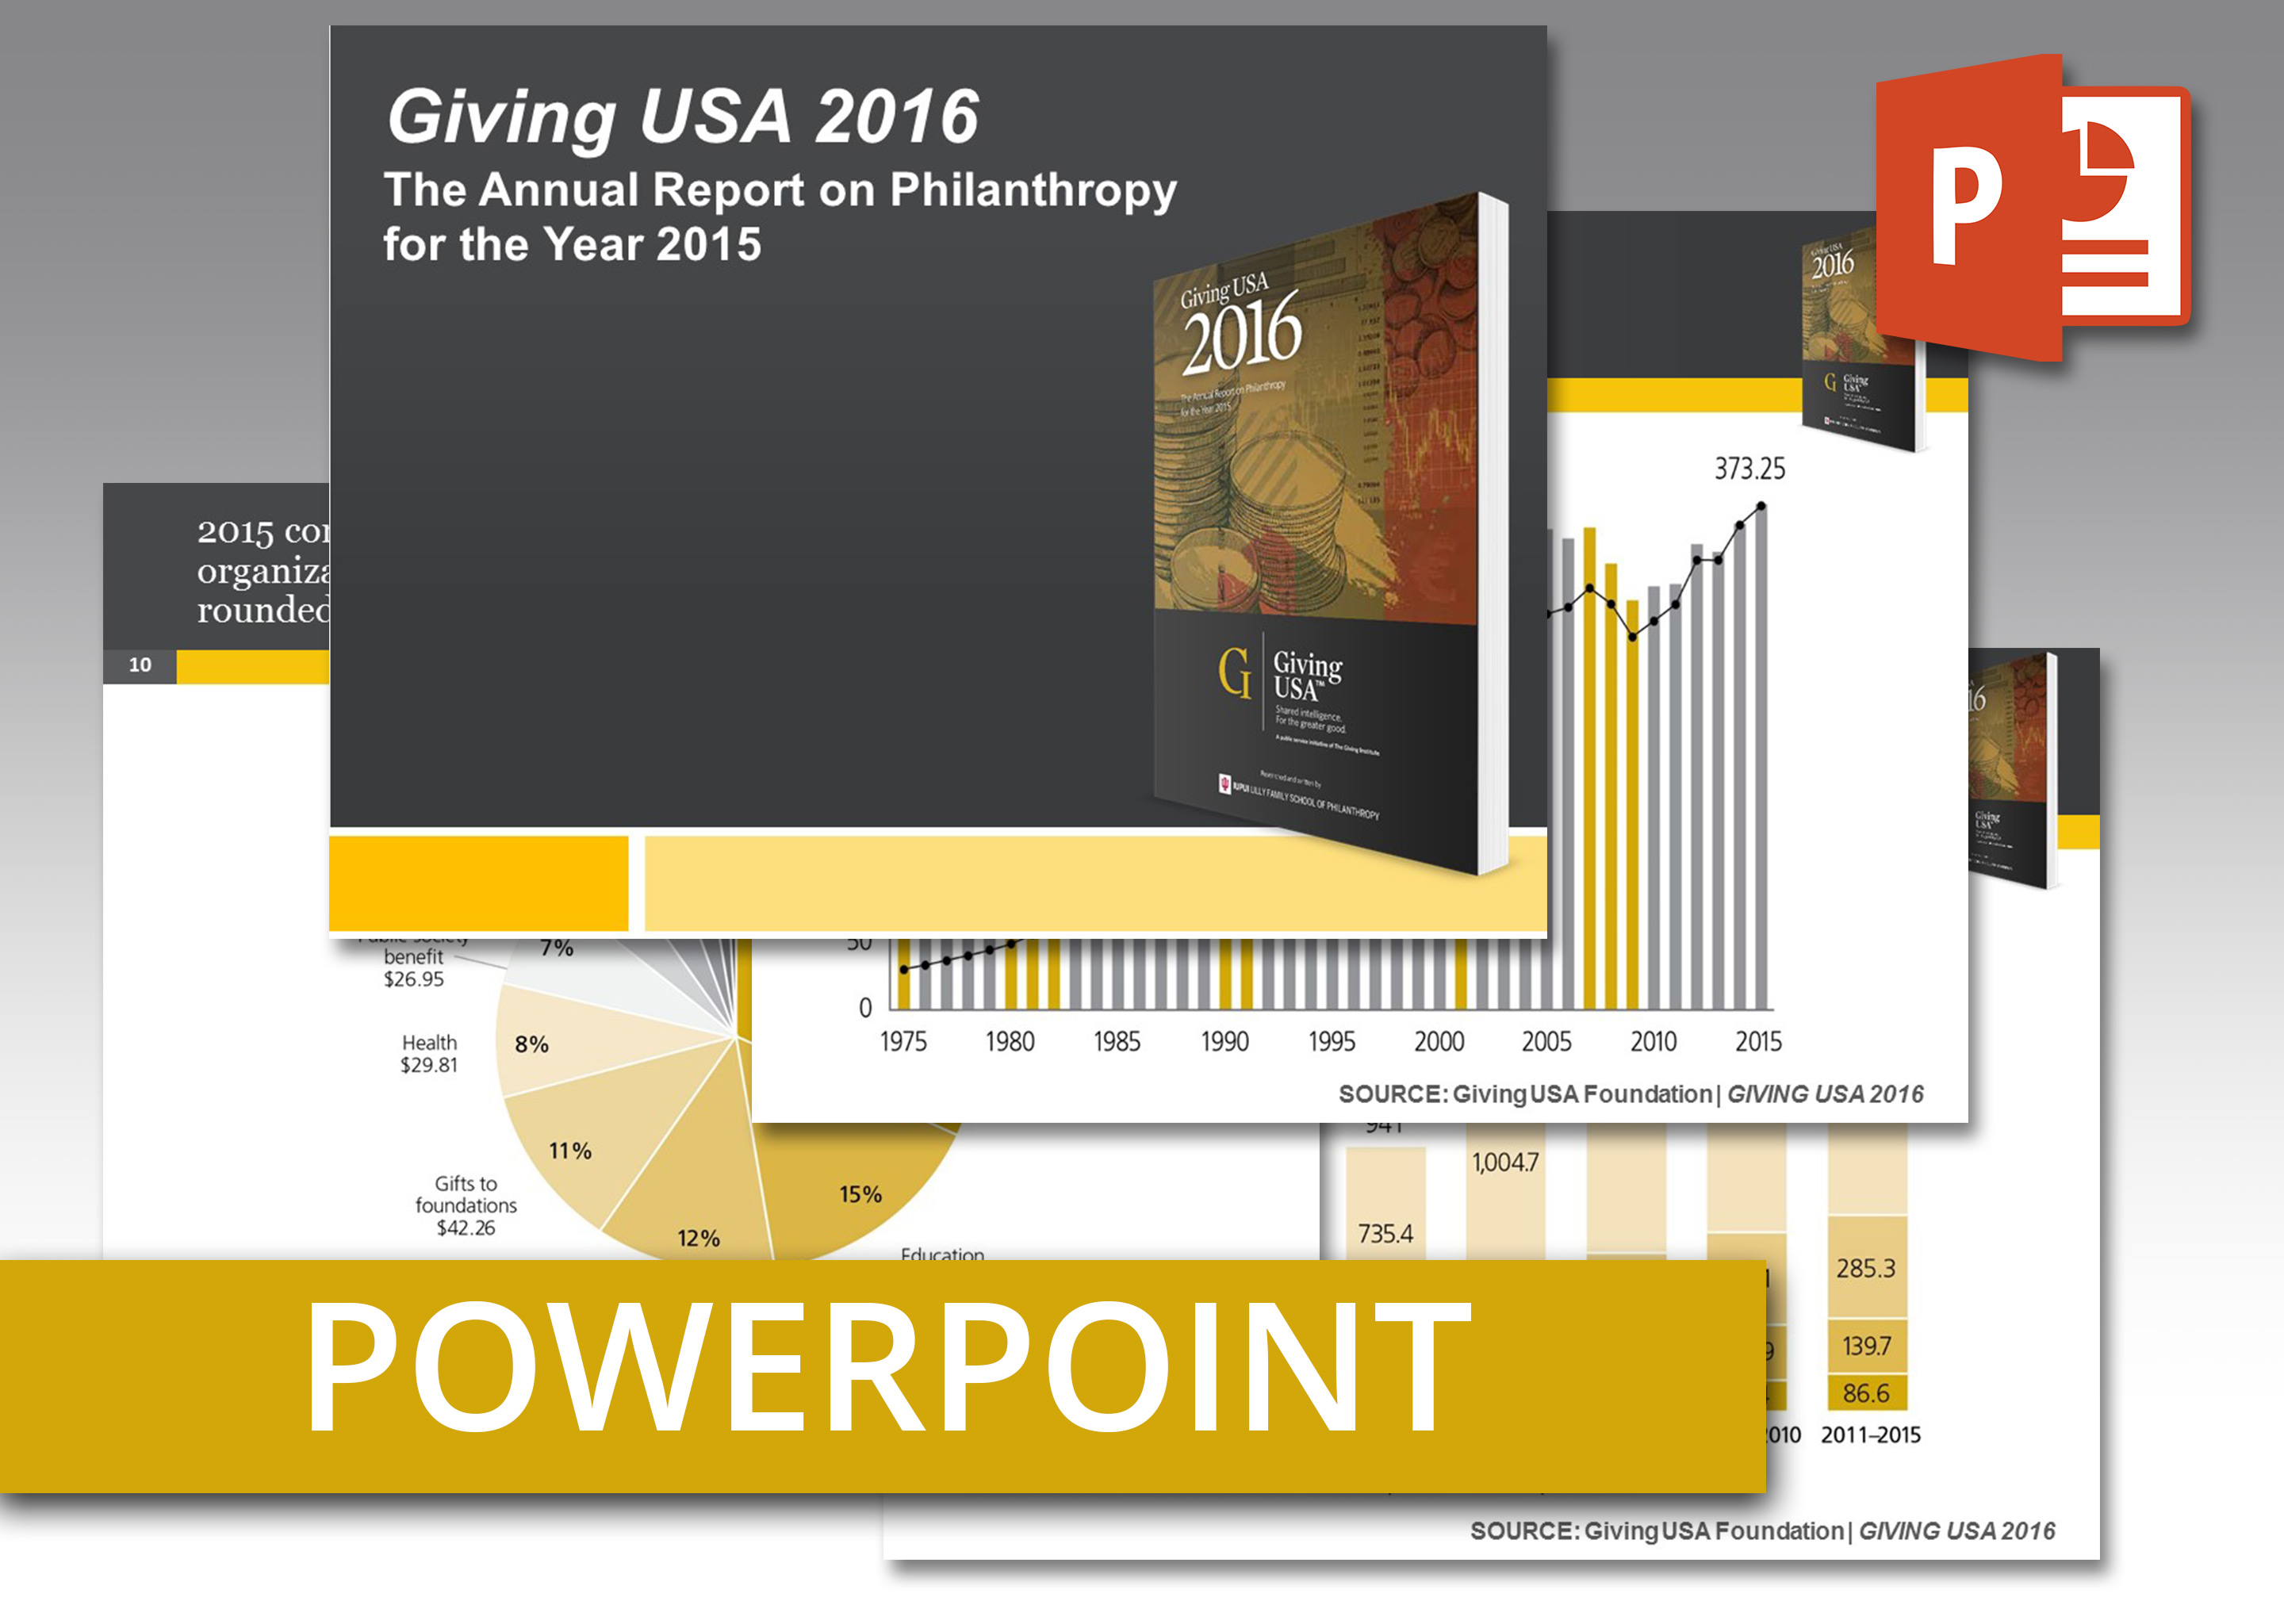 Usdgus  Surprising Giving Usa  Powerpoint An Easytouse Presentation Of Report  With Heavenly Giving Usa  Powerpoint An Easytouse Presentation Of Report Findings Including Talking Points With Extraordinary Preterite Powerpoint Also Interviewing Skills Powerpoint In Addition Notebook Paper Background For Powerpoint And Powerpoint For Mac Tutorial As Well As Nathaniel Hawthorne Powerpoint Additionally Alcohol Abuse Powerpoint From Givingusaorg With Usdgus  Heavenly Giving Usa  Powerpoint An Easytouse Presentation Of Report  With Extraordinary Giving Usa  Powerpoint An Easytouse Presentation Of Report Findings Including Talking Points And Surprising Preterite Powerpoint Also Interviewing Skills Powerpoint In Addition Notebook Paper Background For Powerpoint From Givingusaorg